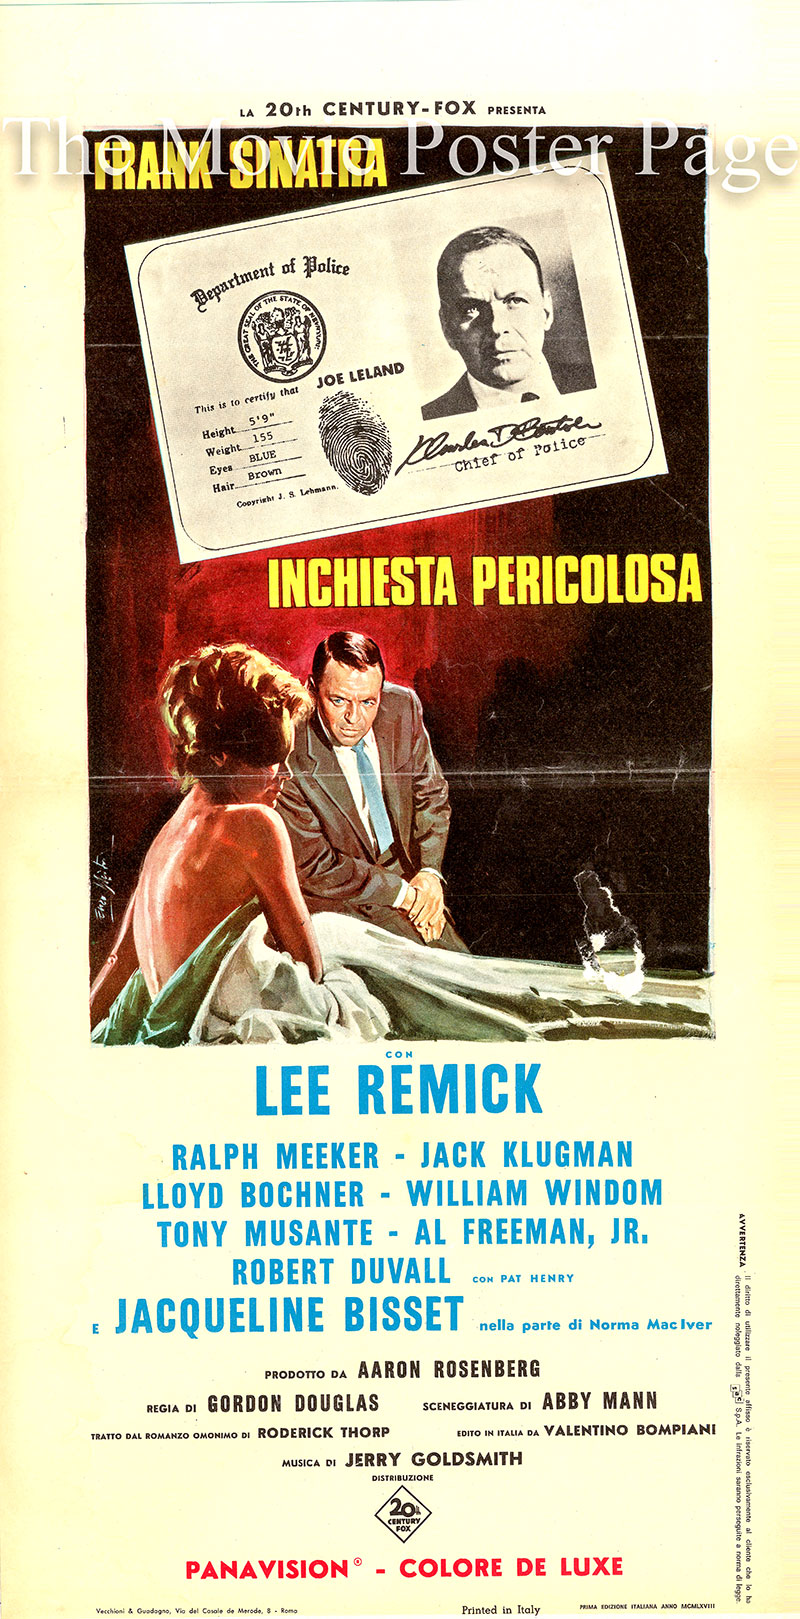 pictured is an Italian locandina poster for the 1968 Gordon Douglas film <i>The Detective</i> starring Frank Sinatra as Joe Leland.